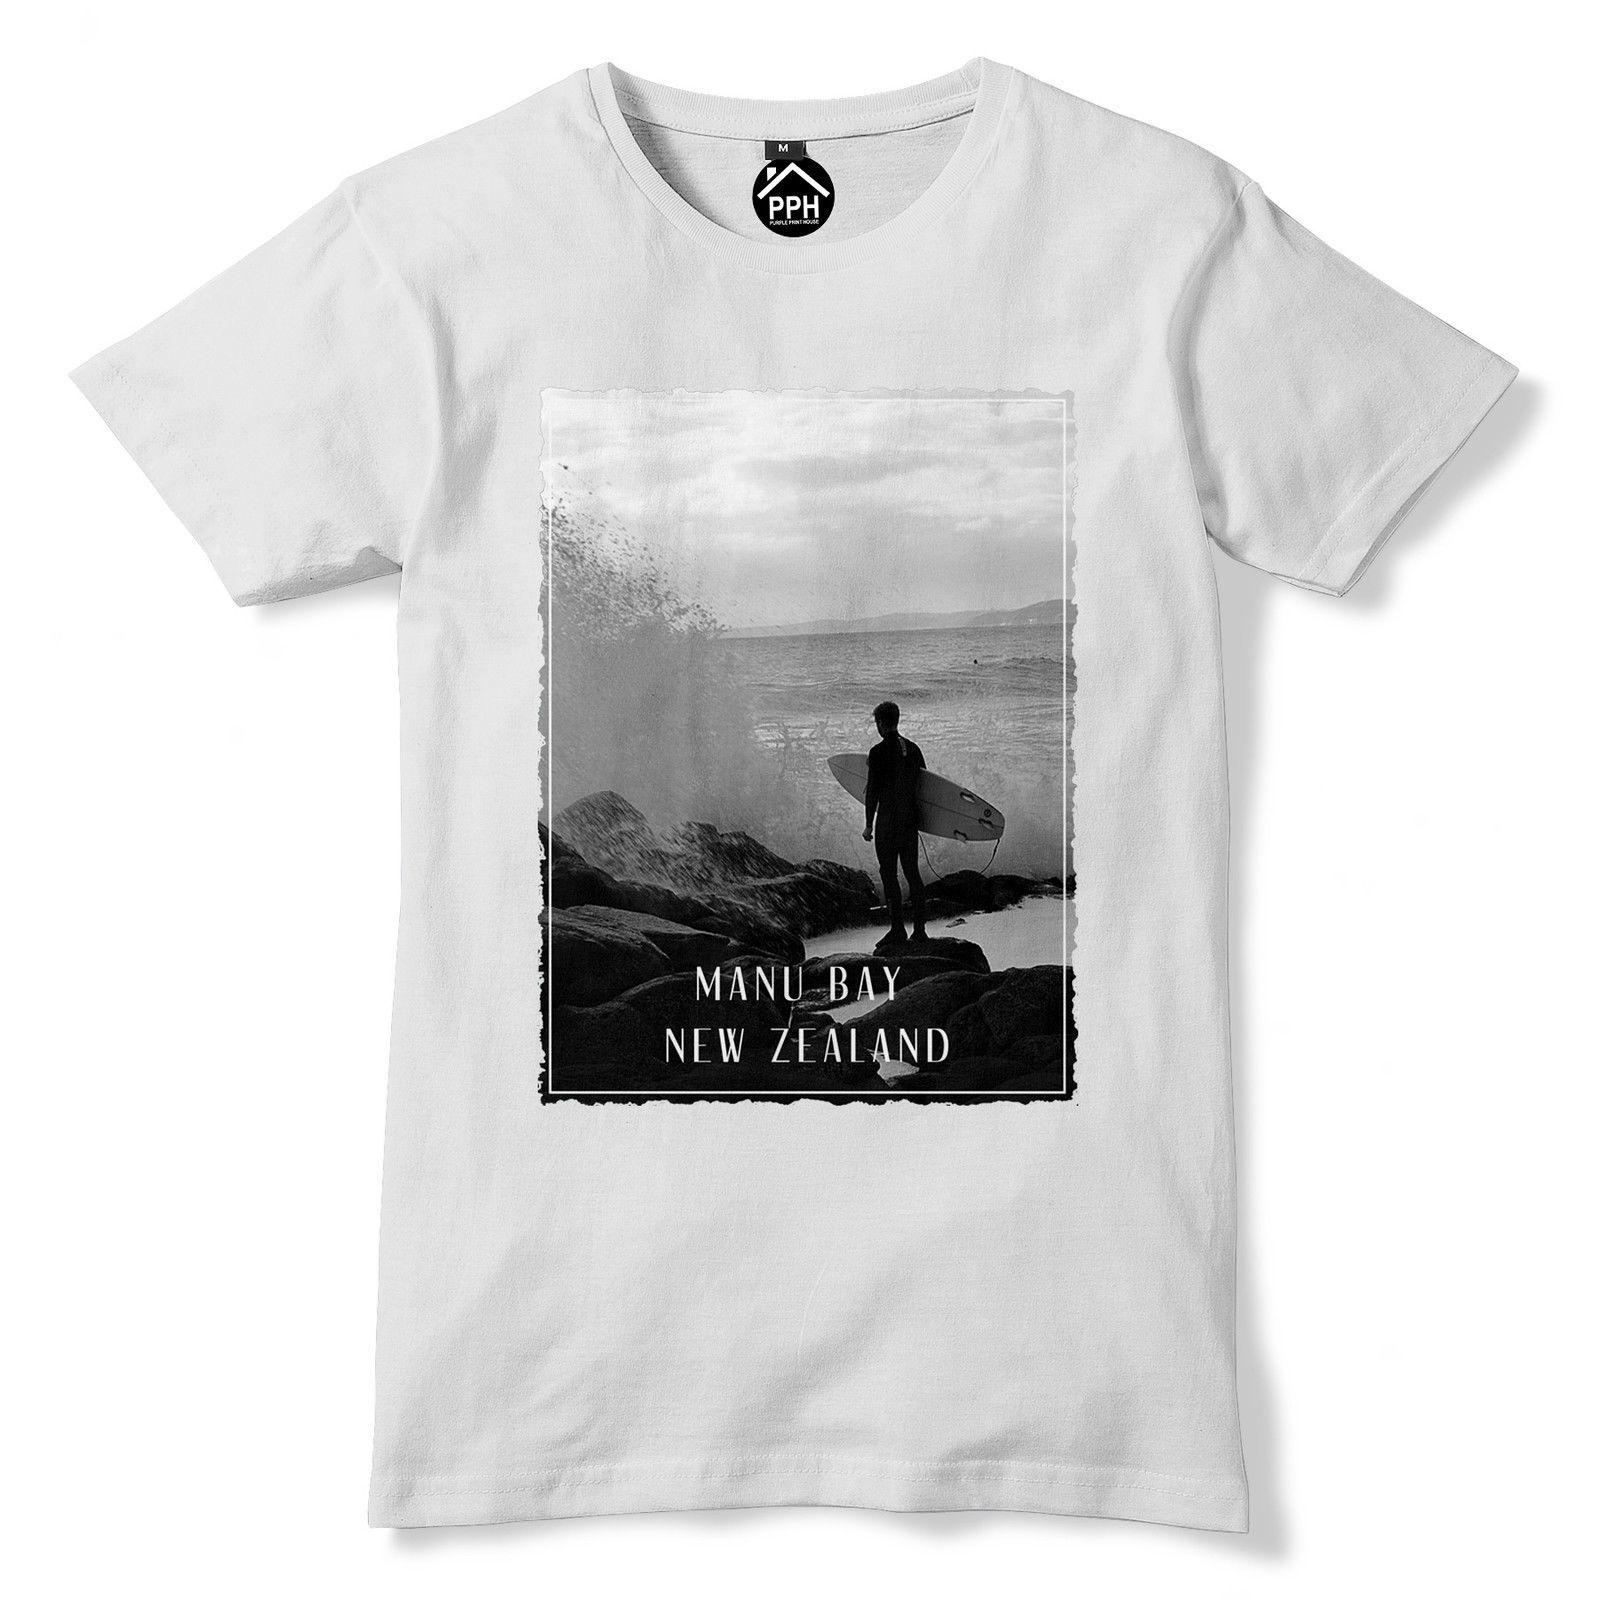 afb180efa Manu Bay New Zealand T Shirt Surfer Board Mens Top Famous Surfinger T Shirt  Sleeve T Shirt Summer Men Tee Tops Clothing